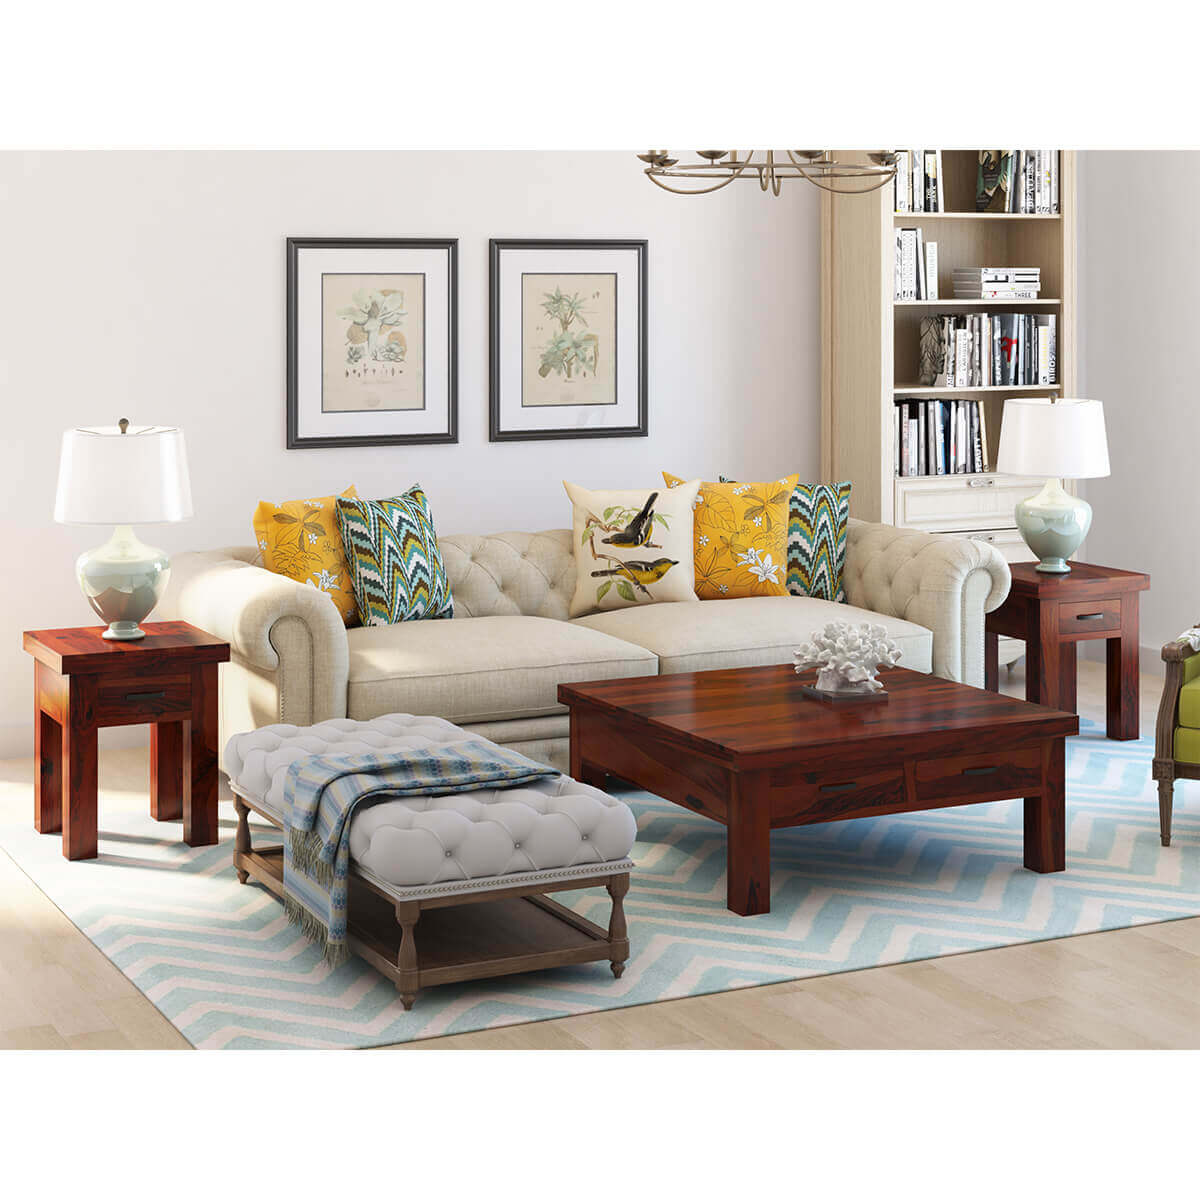 Modern Coffee Table With Storage Modern 3 Piece Solid Wood Coffee Table Set With Storage